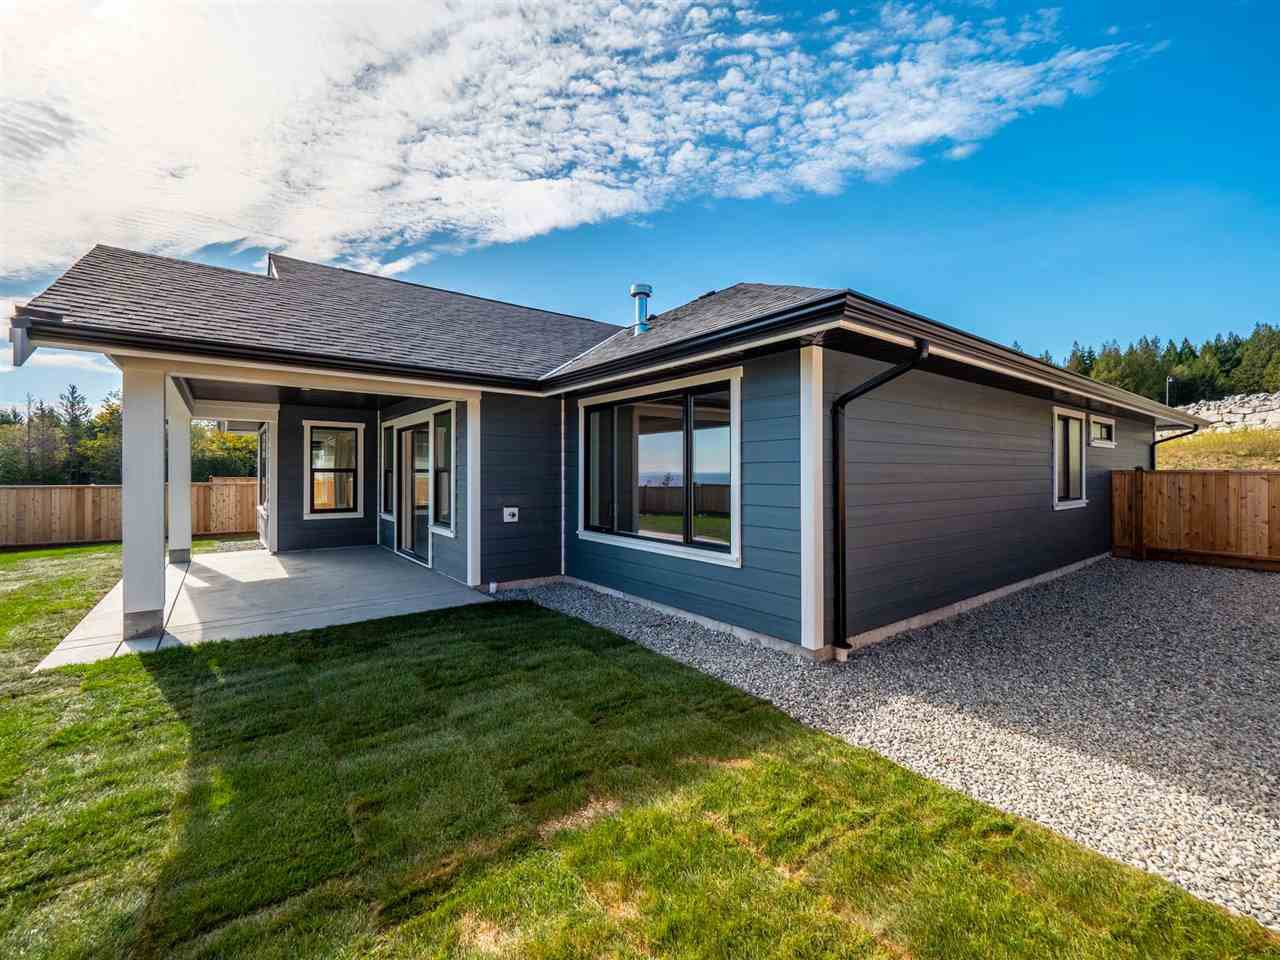 """Photo 5: Photos: 5634 KINGBIRD Crescent in Sechelt: Sechelt District House for sale in """"SilverStone Heights Phase2"""" (Sunshine Coast)  : MLS®# R2466073"""